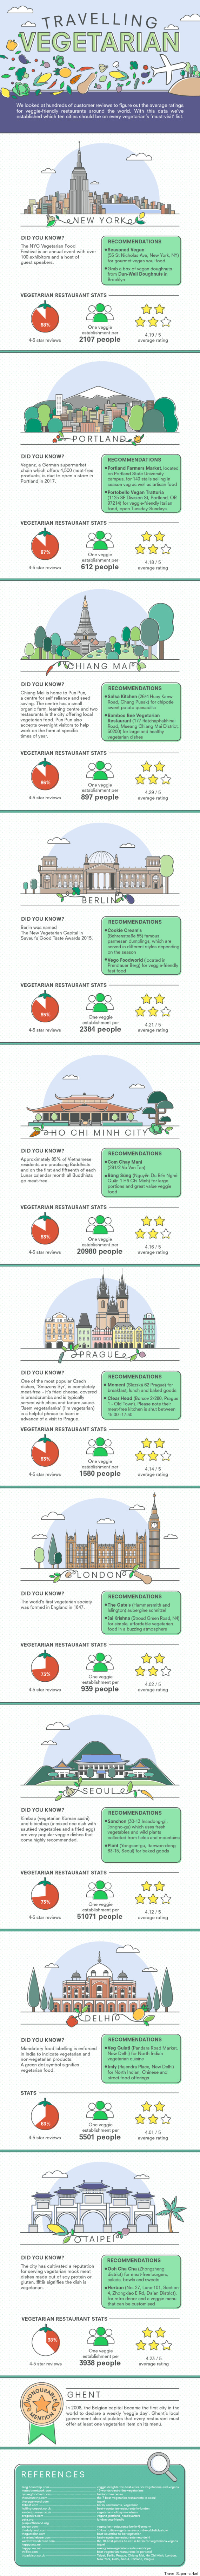 vegetarian friendly cities